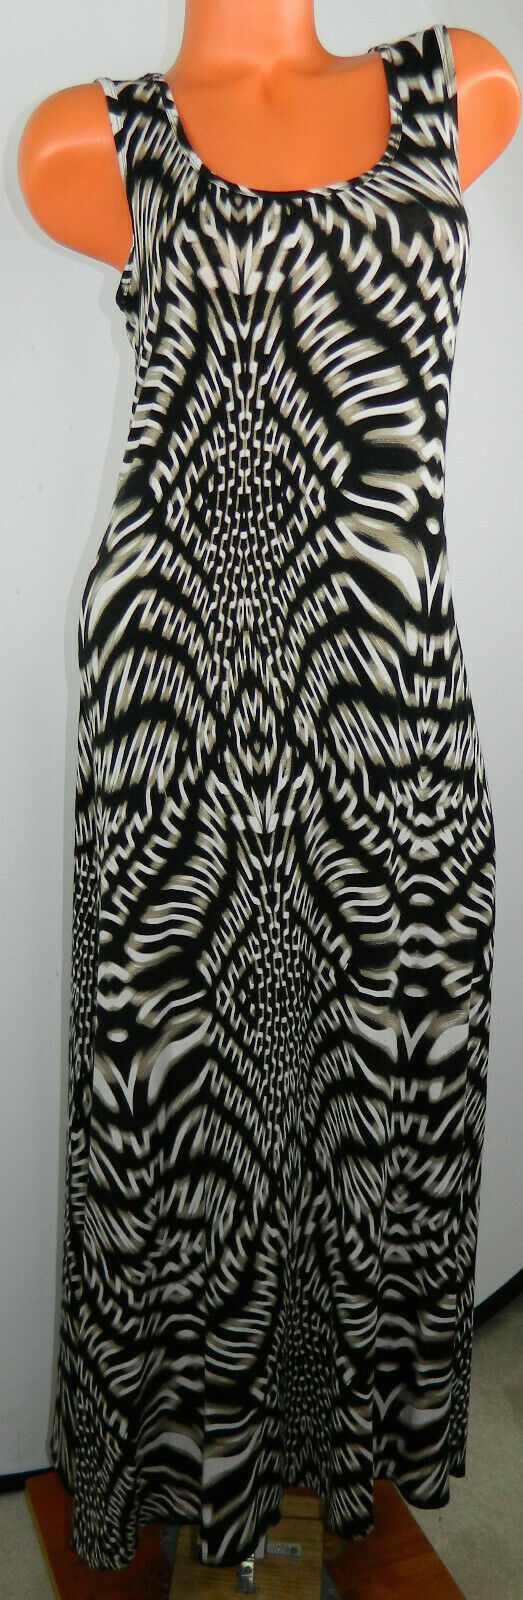 Calvin Klein Small 4 6 Maxi Dress Lace Black Tan Animal Print Sleeveless   #9